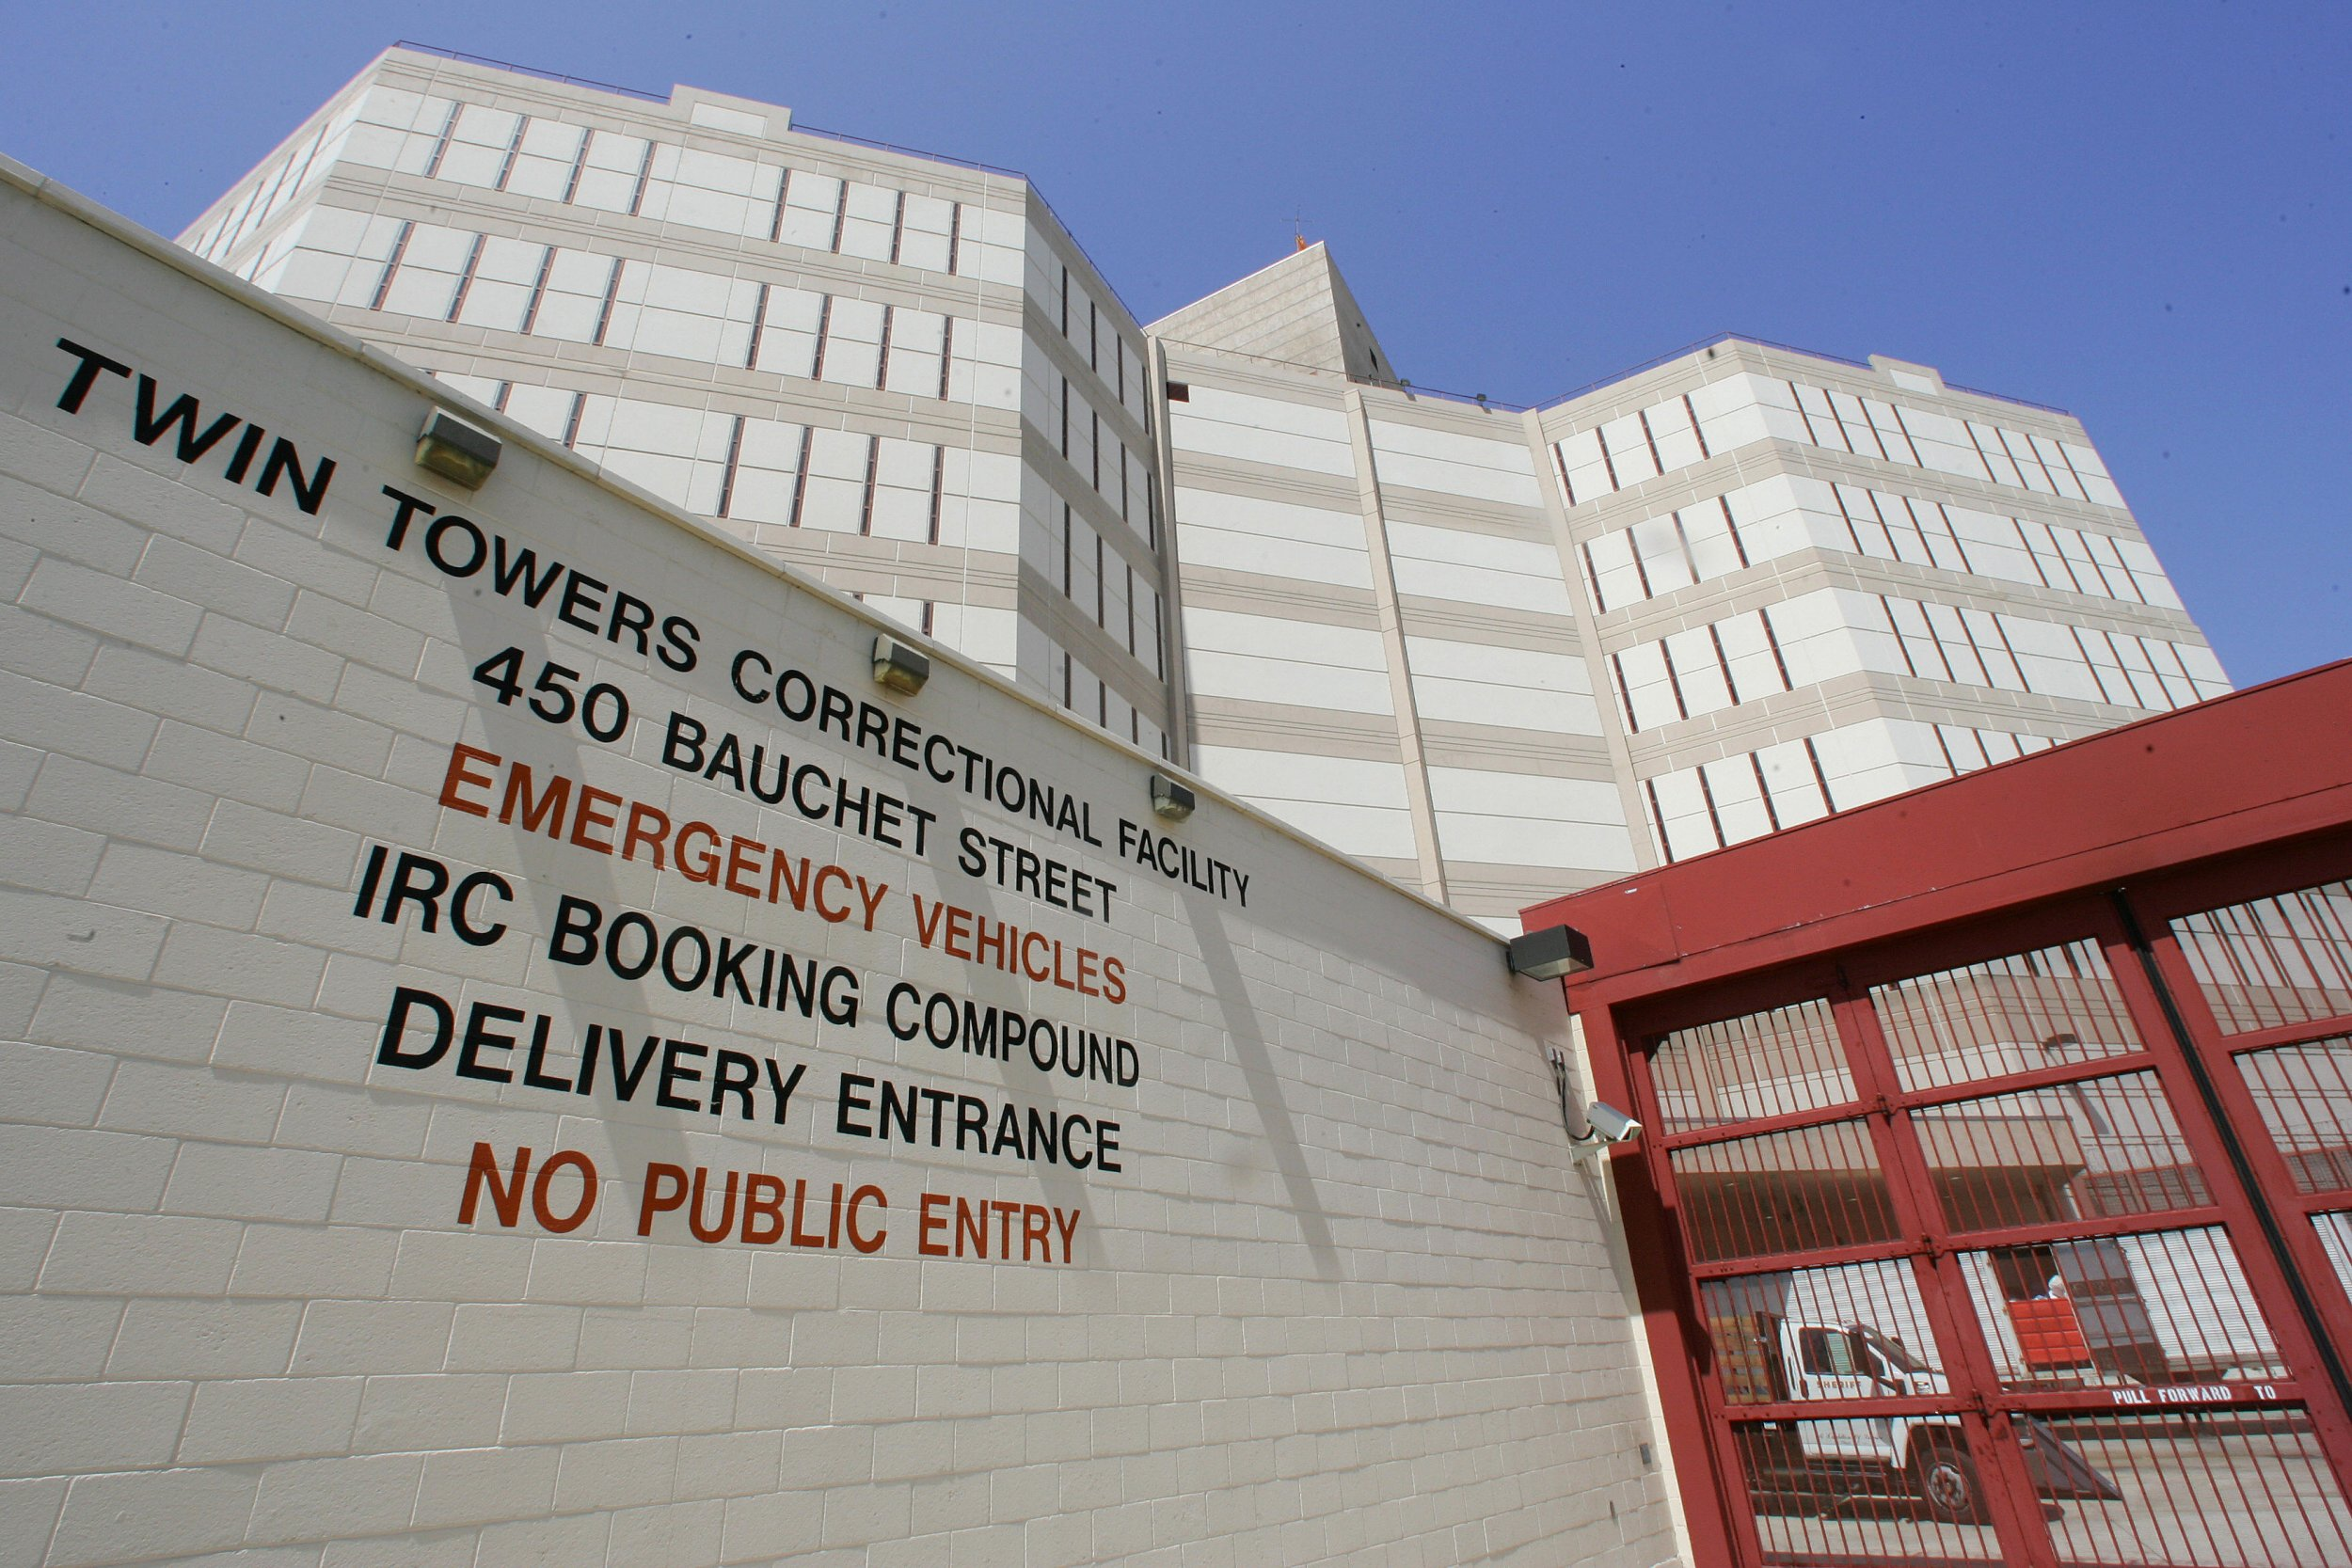 GettyImages-74455320 Twin Towers Correctional Facility in Los Angeles